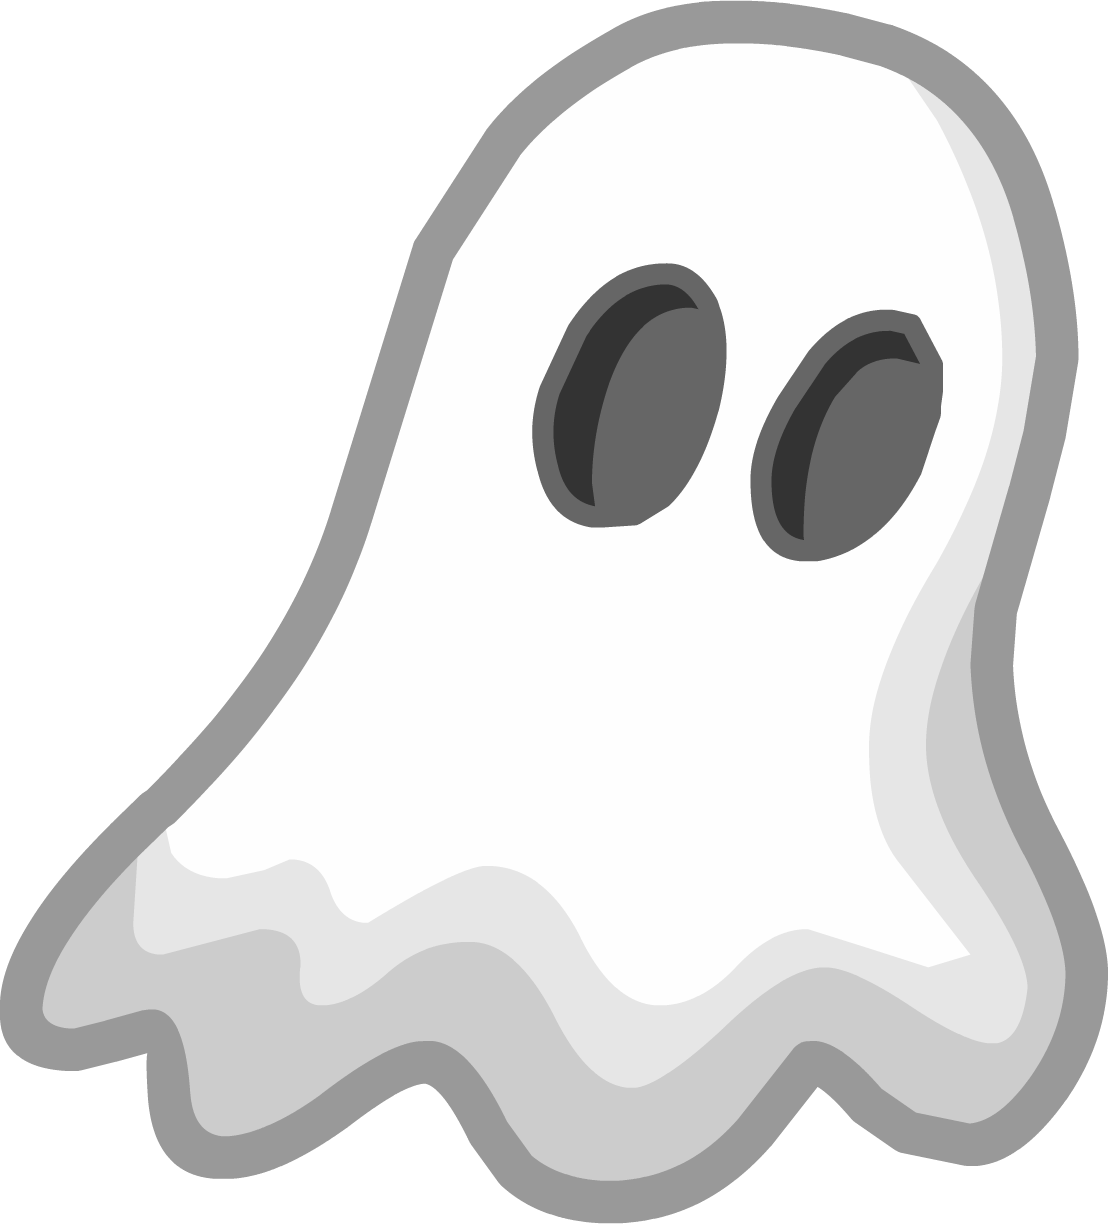 Cartoon ghost png. Image halloween emoticons club